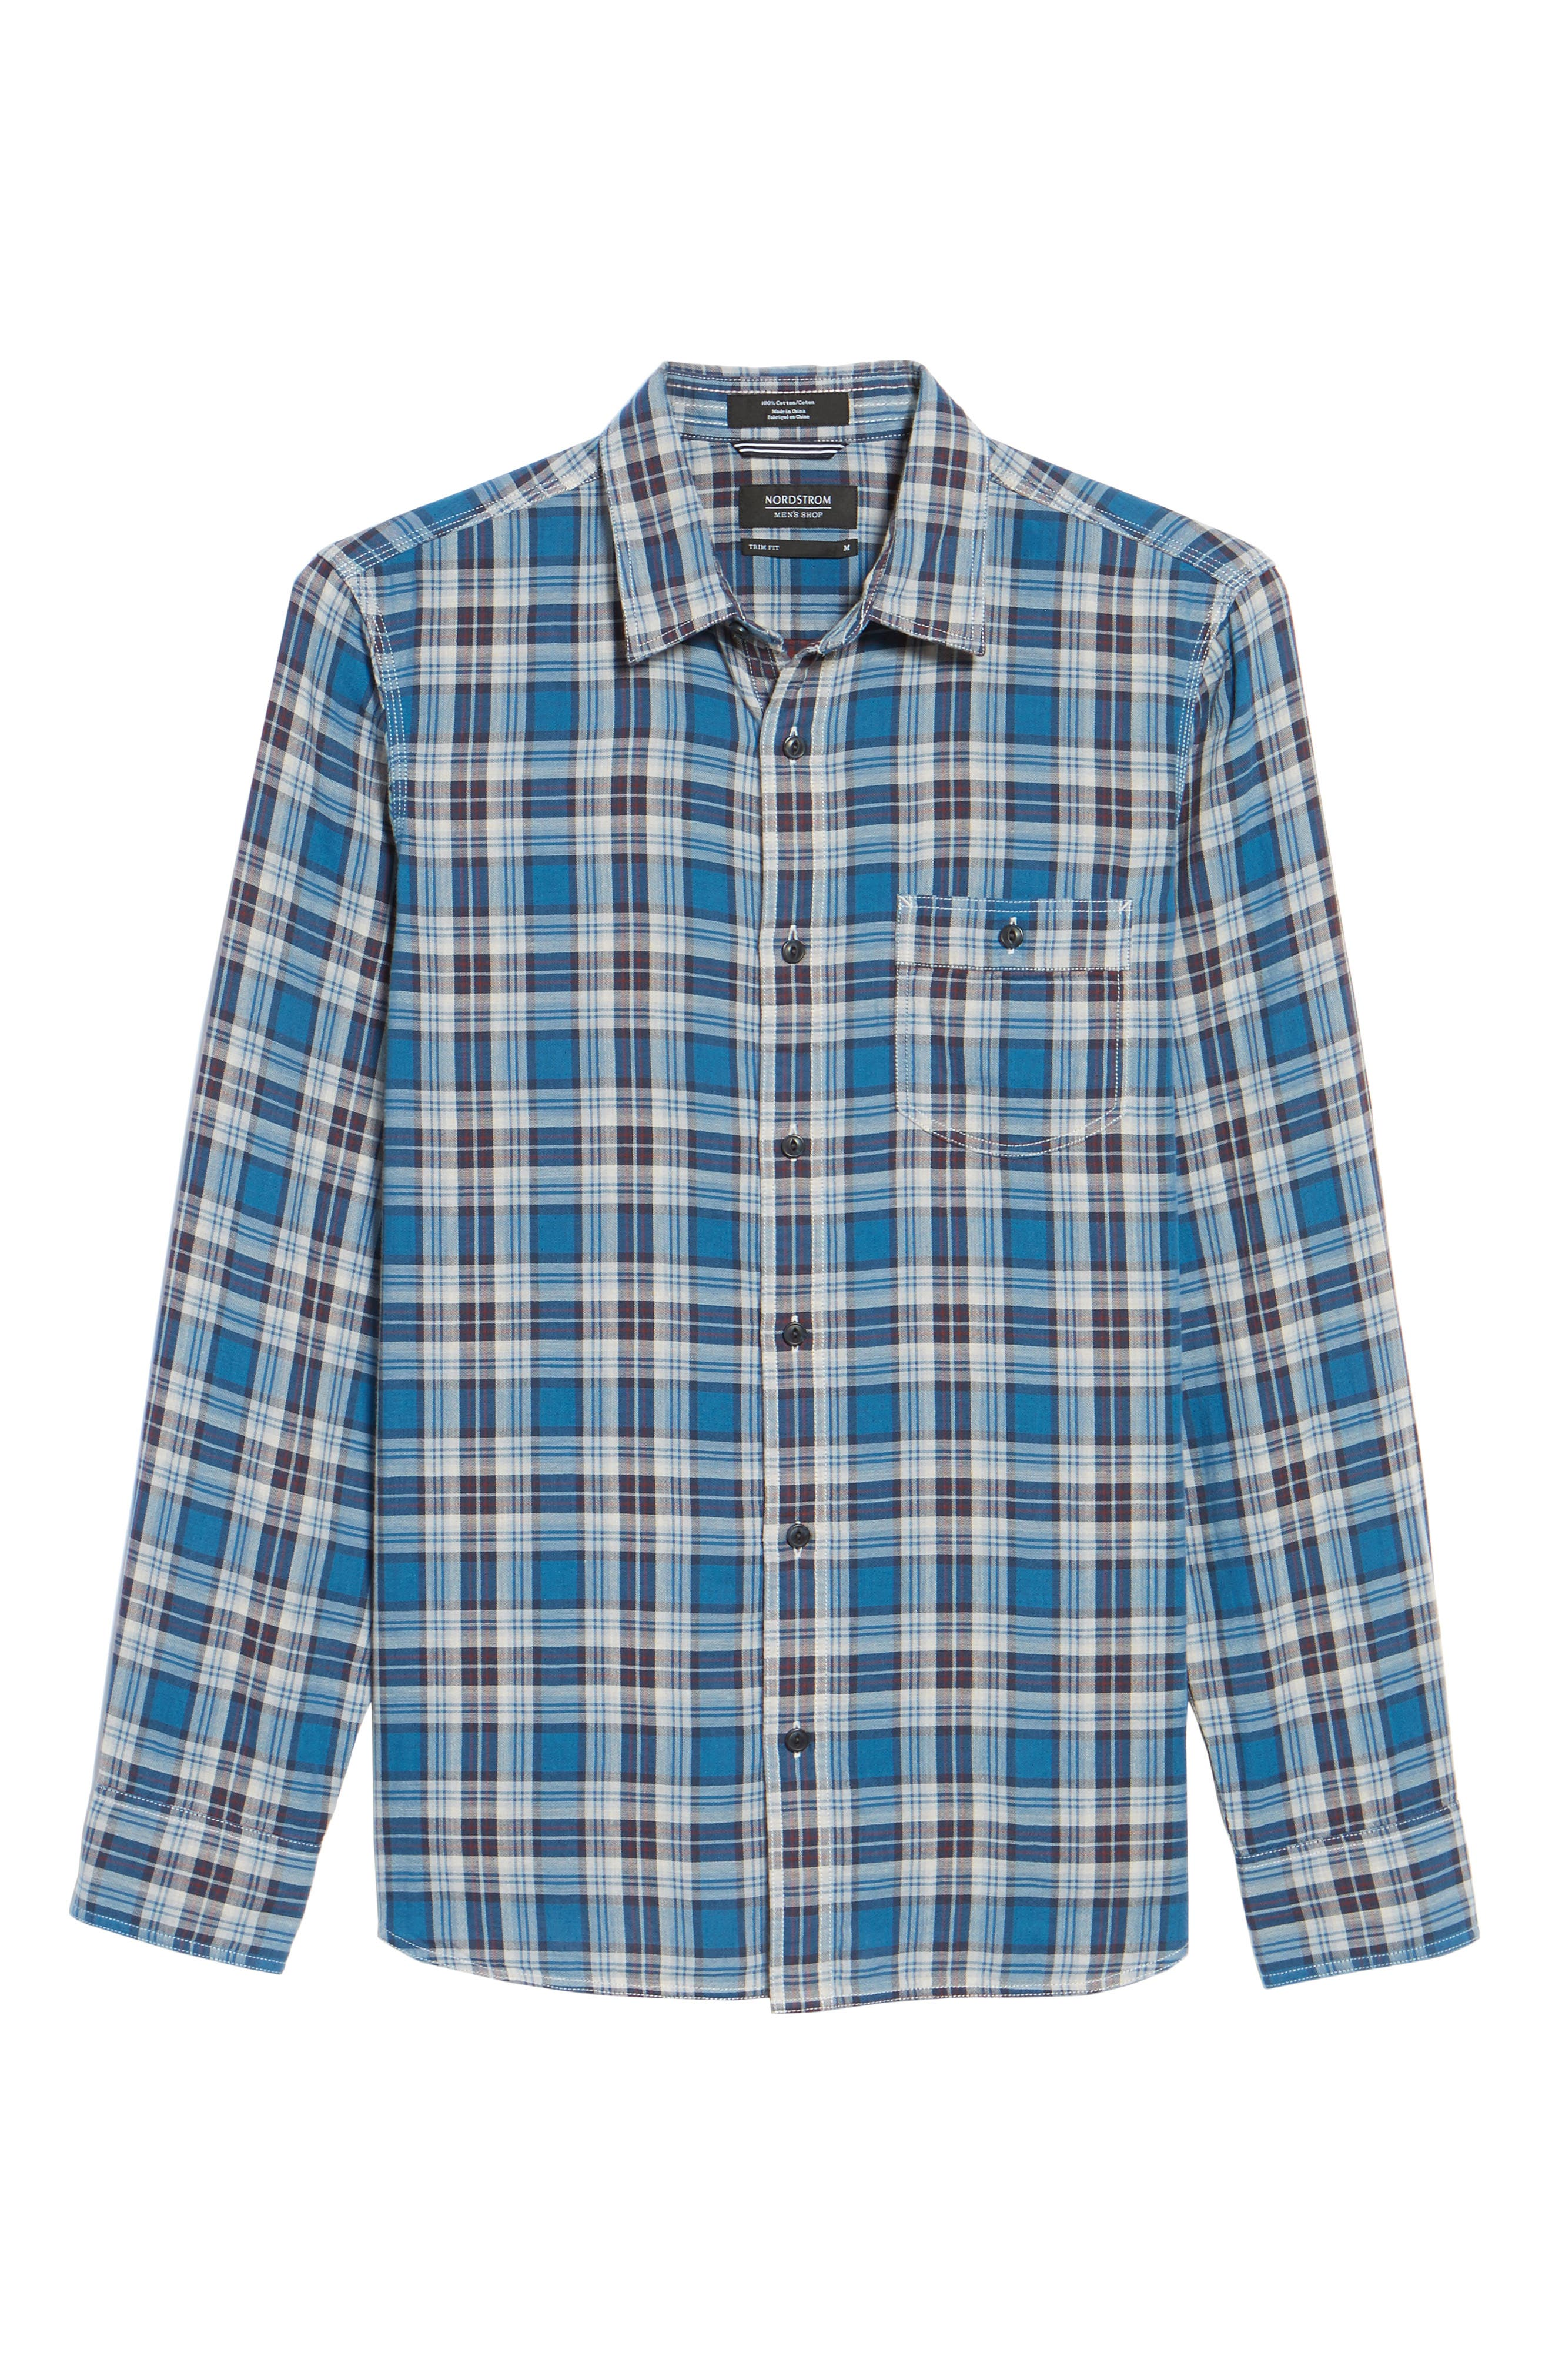 Workwear Duofold Plaid Sport Shirt,                             Alternate thumbnail 6, color,                             440